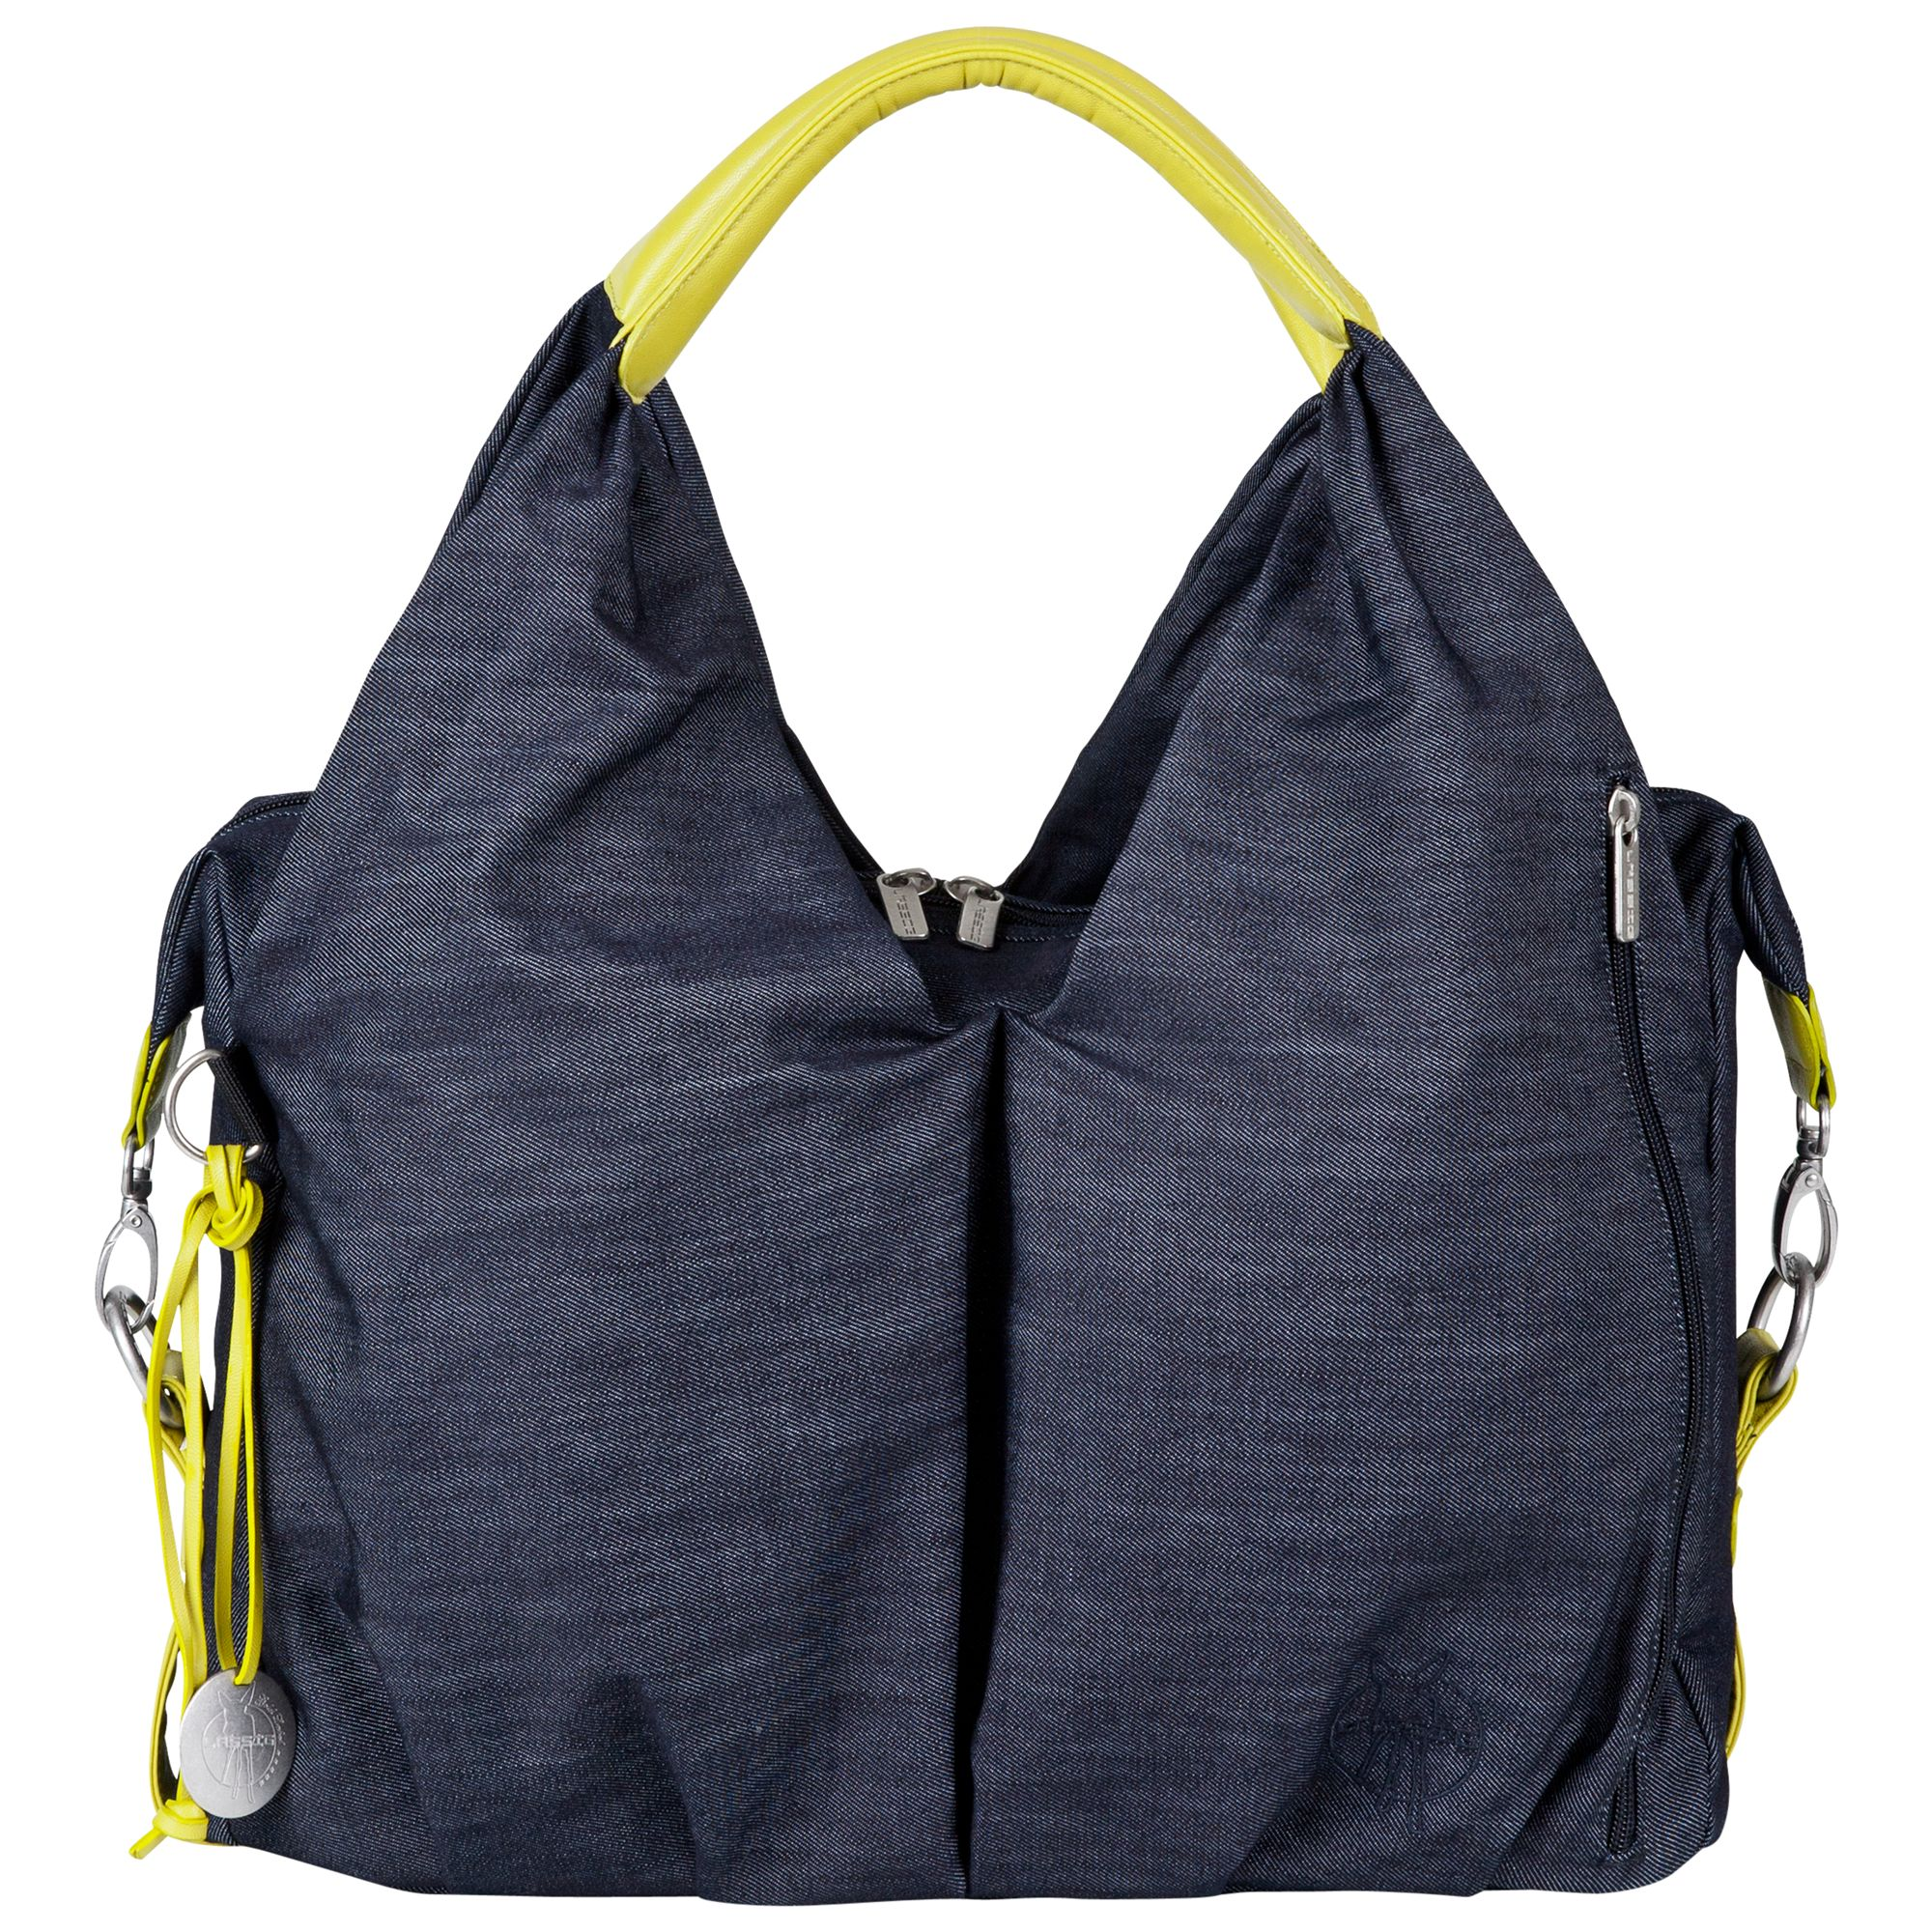 Laessig Laessig Neckline Changing Bag, Denim